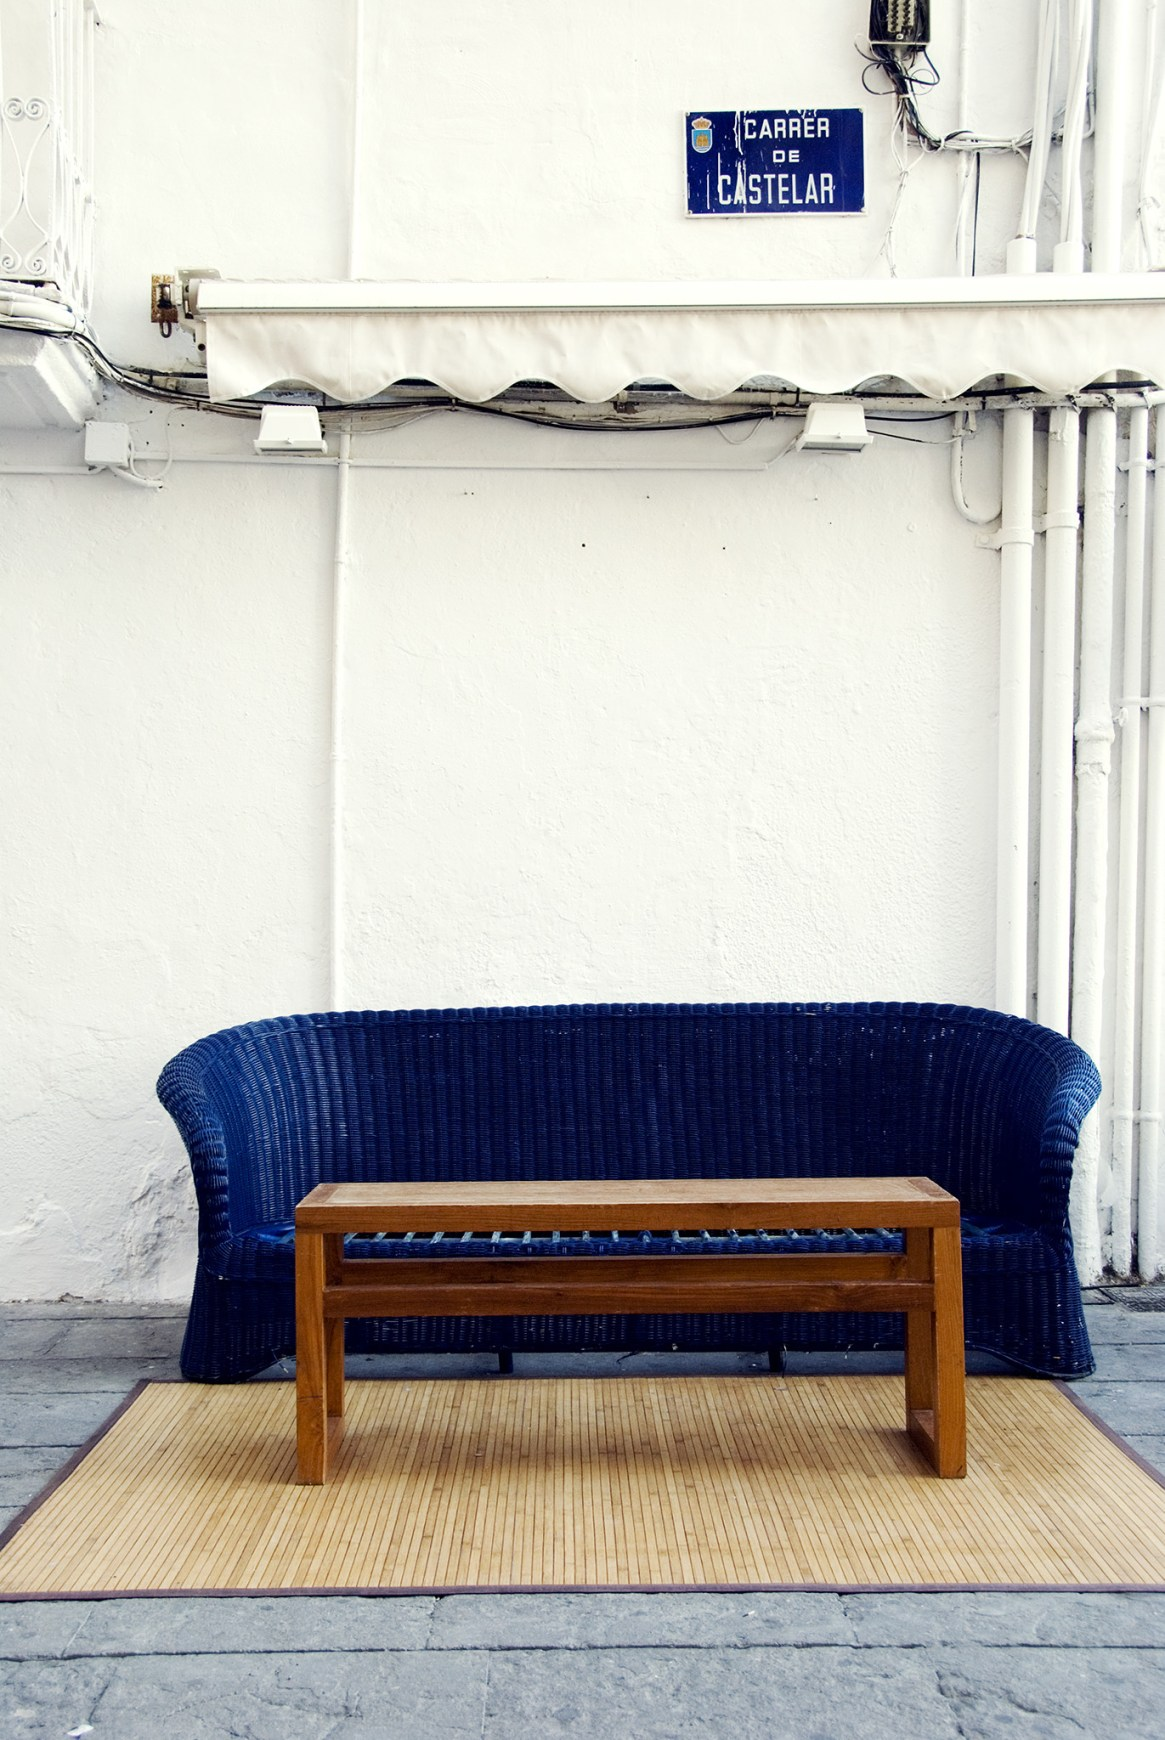 Blue sofa and brown table against a white wall